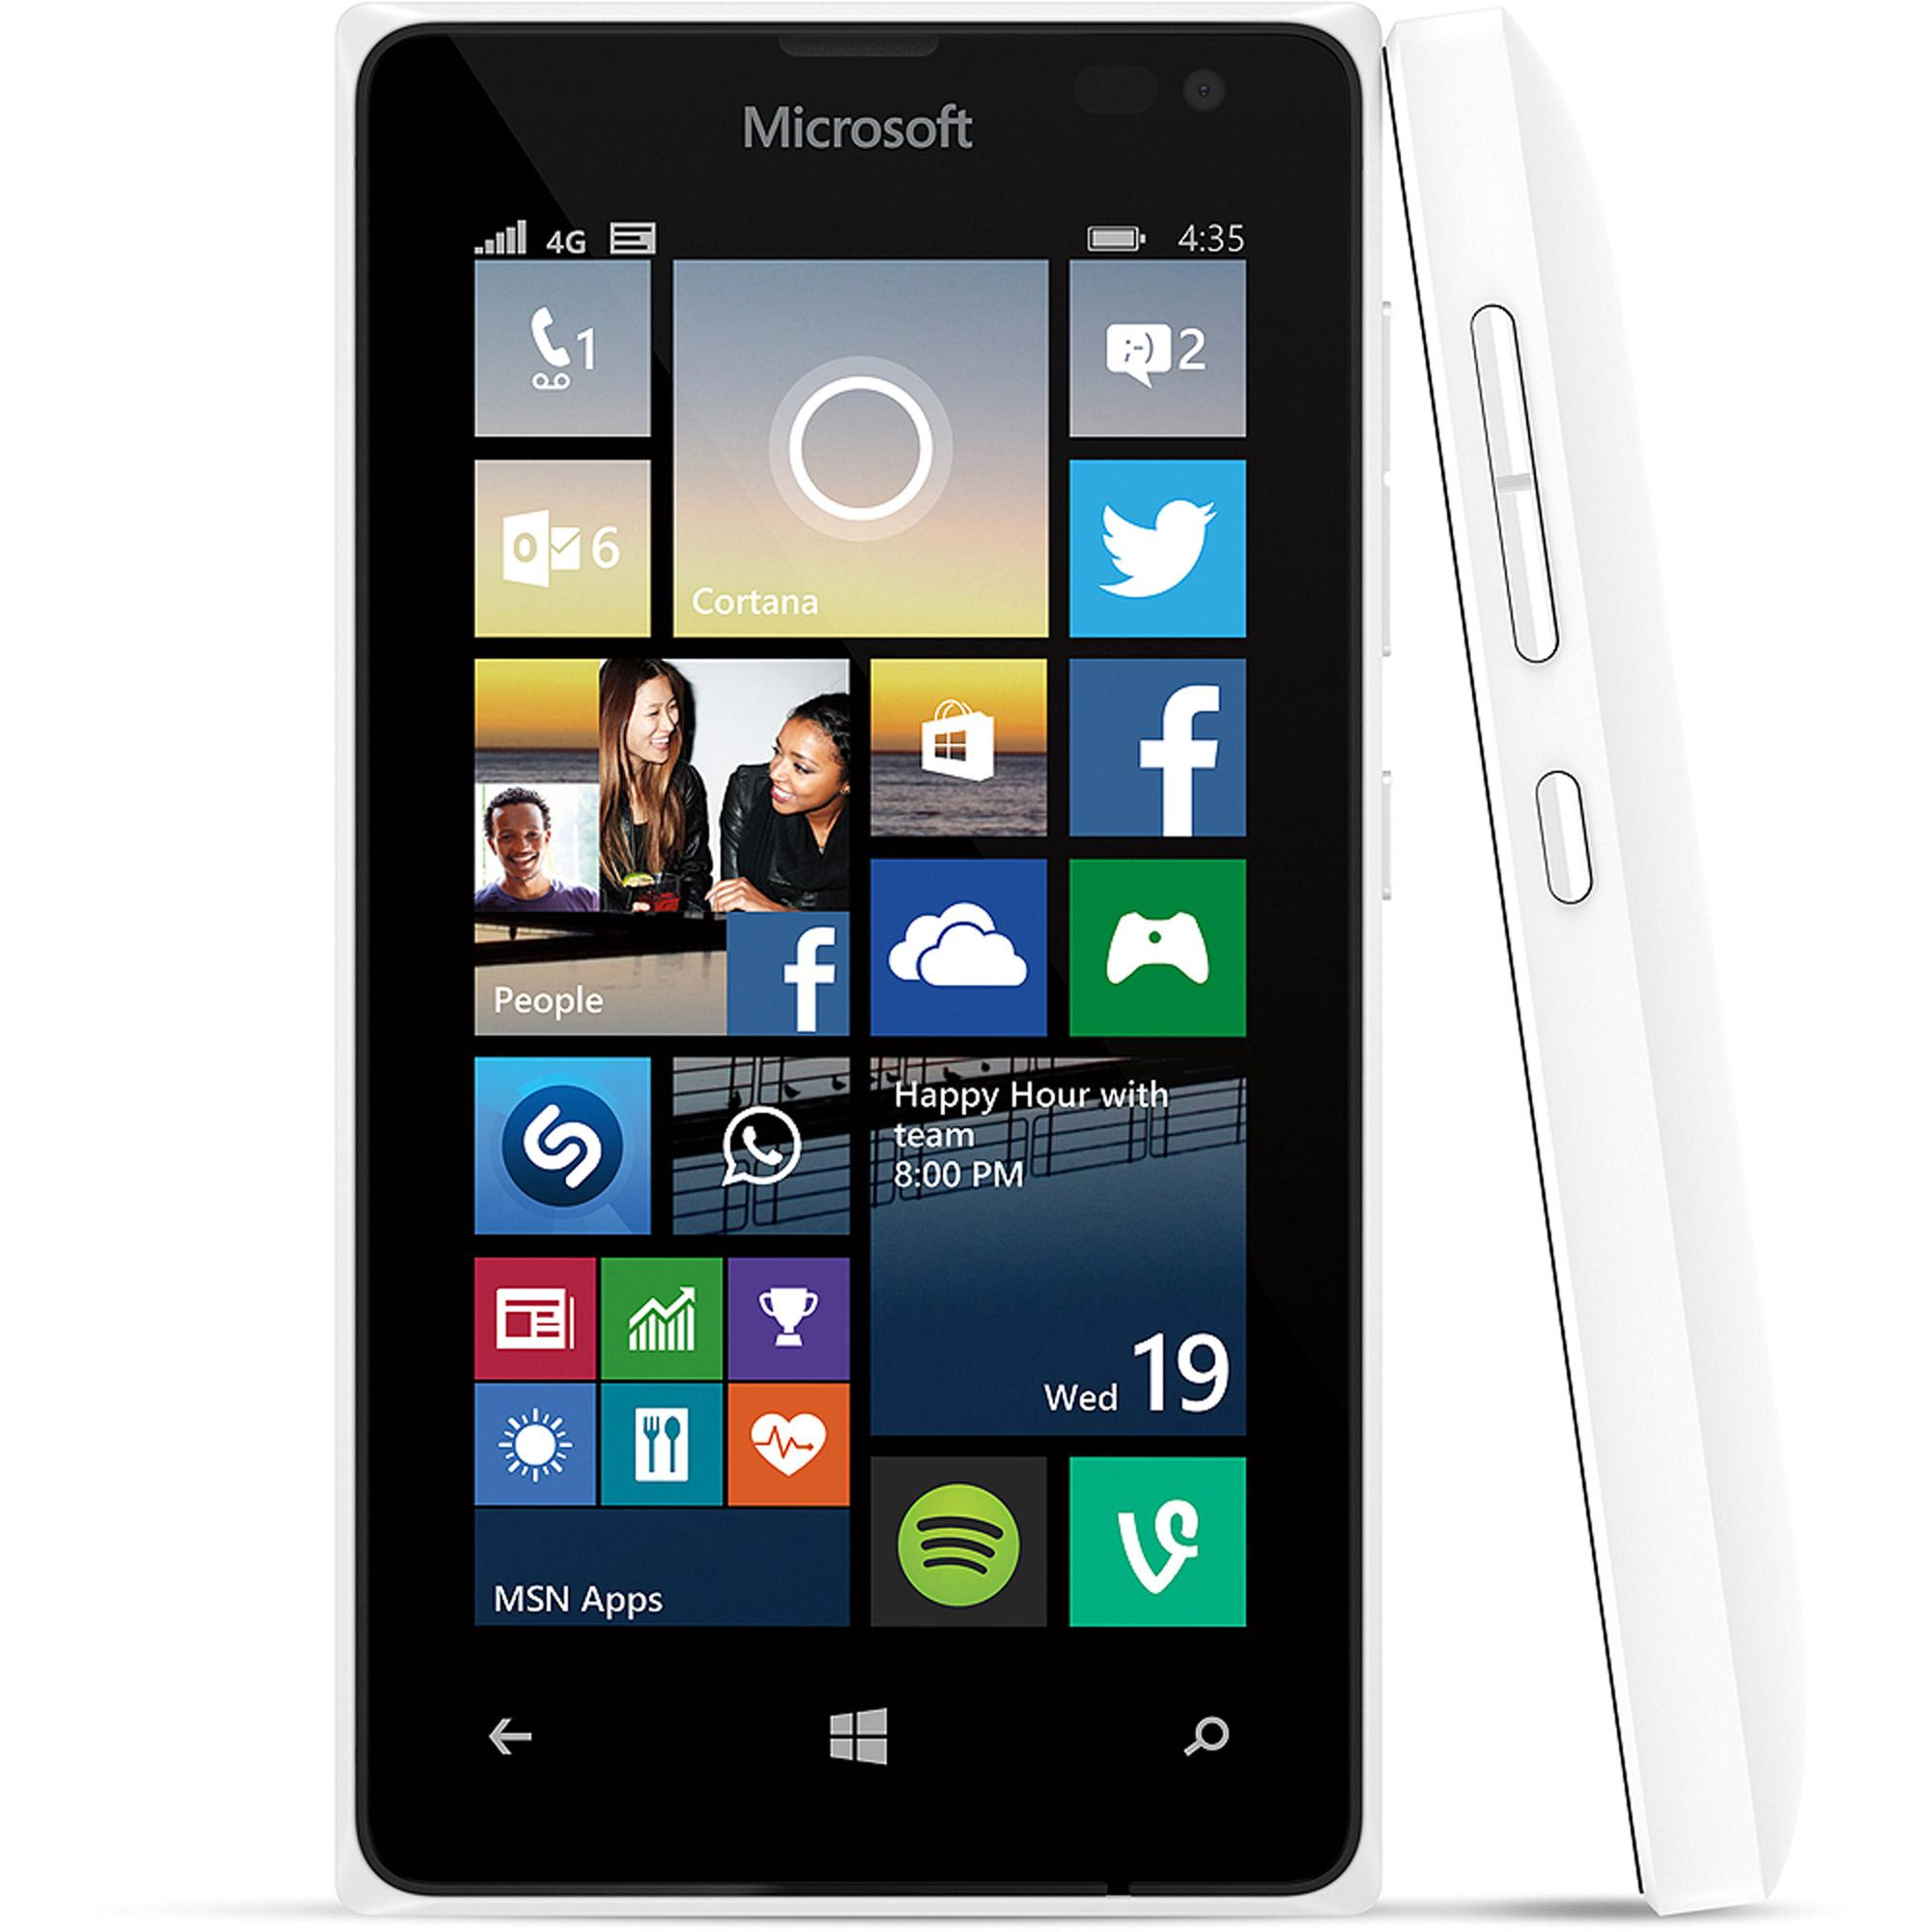 Nokia lumia 435 8gb 4g lte windows 8 1 phone with for t for Window 4g mobile